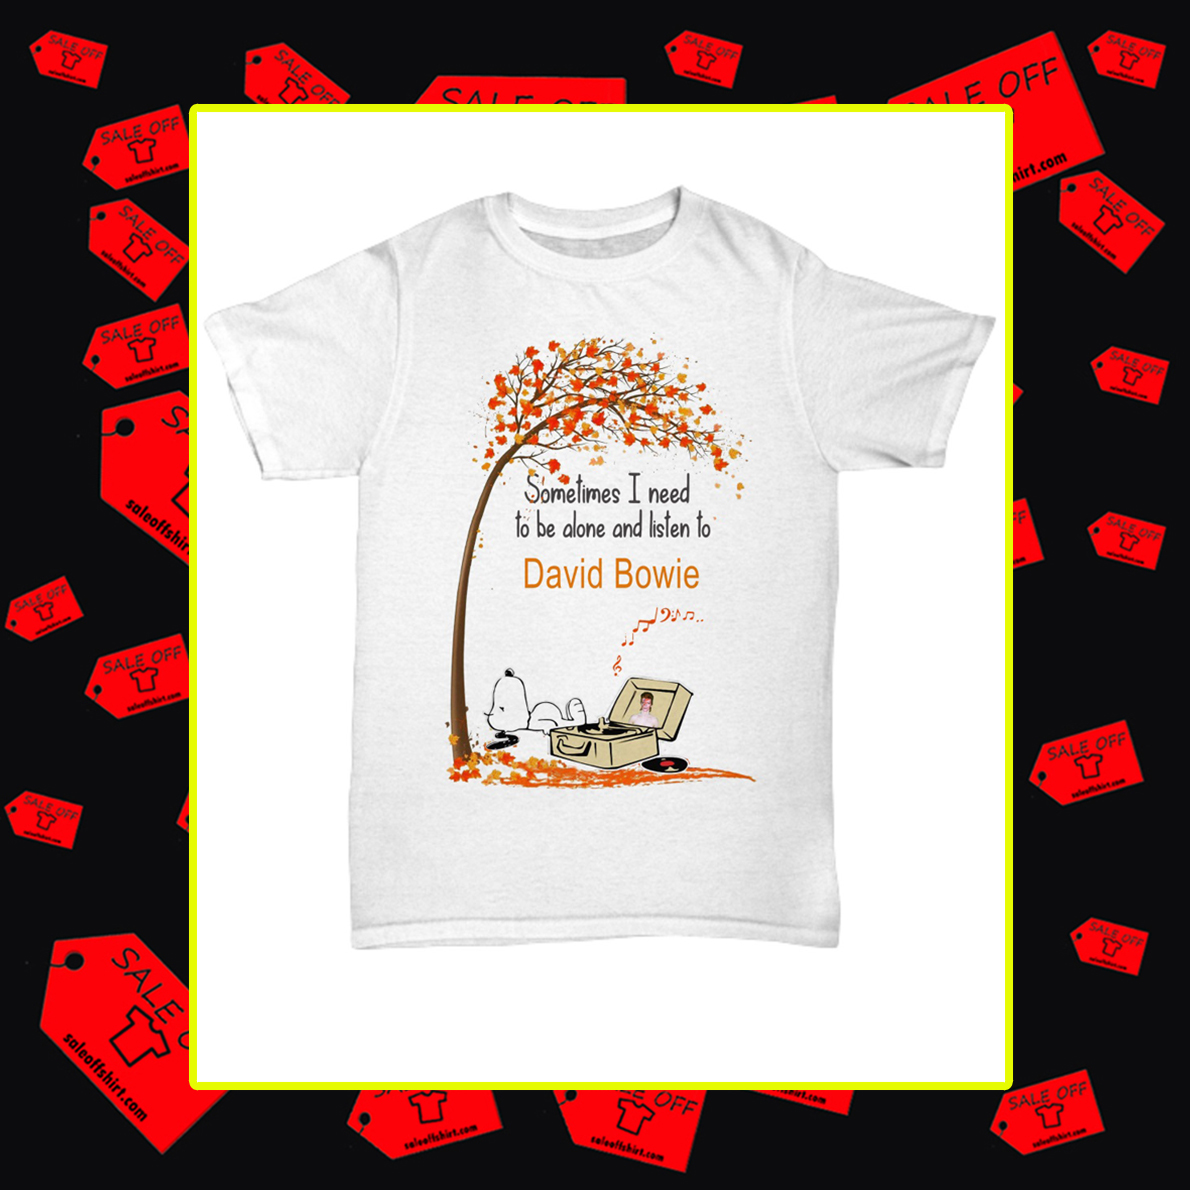 Snoopy sometimes I need to be alone and listen to David Bowie shirt